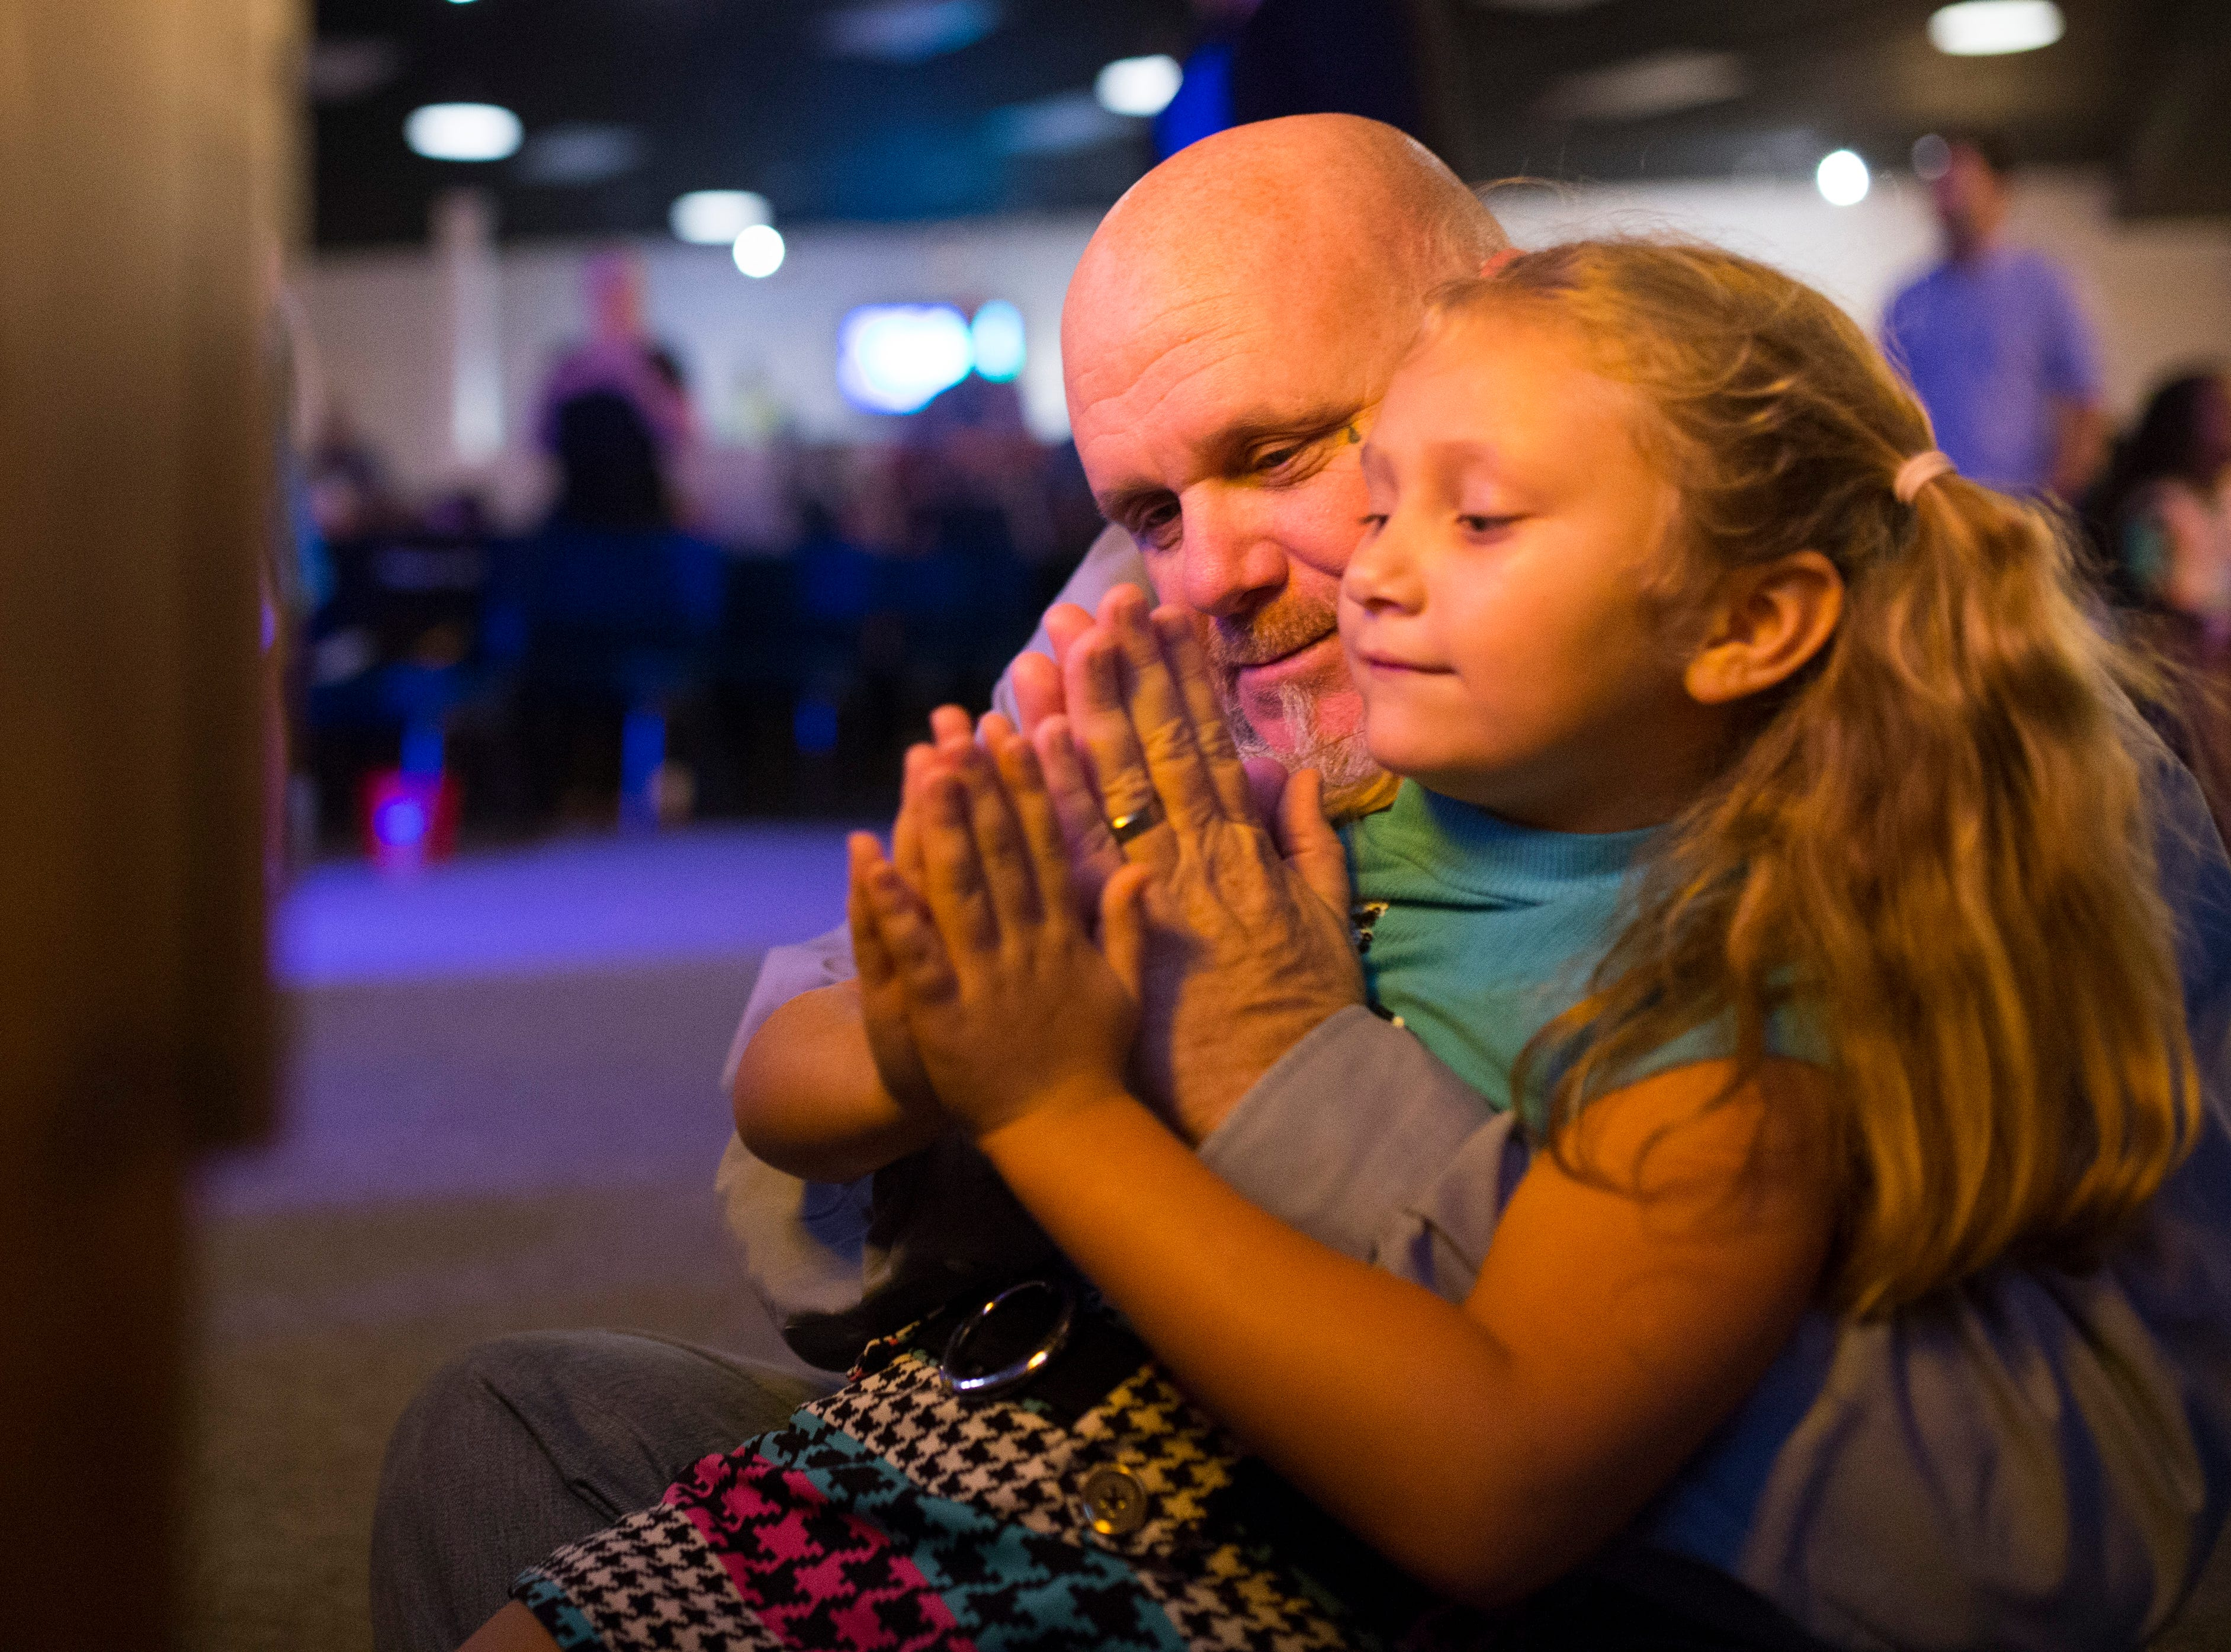 Troy Walters prays at church with his granddaughter on Wednesday, Oct. 24, 2018 in Corpus Christi.  His family has struggled with addiction over the years. Now he's a drug counselor forSouth Texas Substance Abuse Recovery Services.